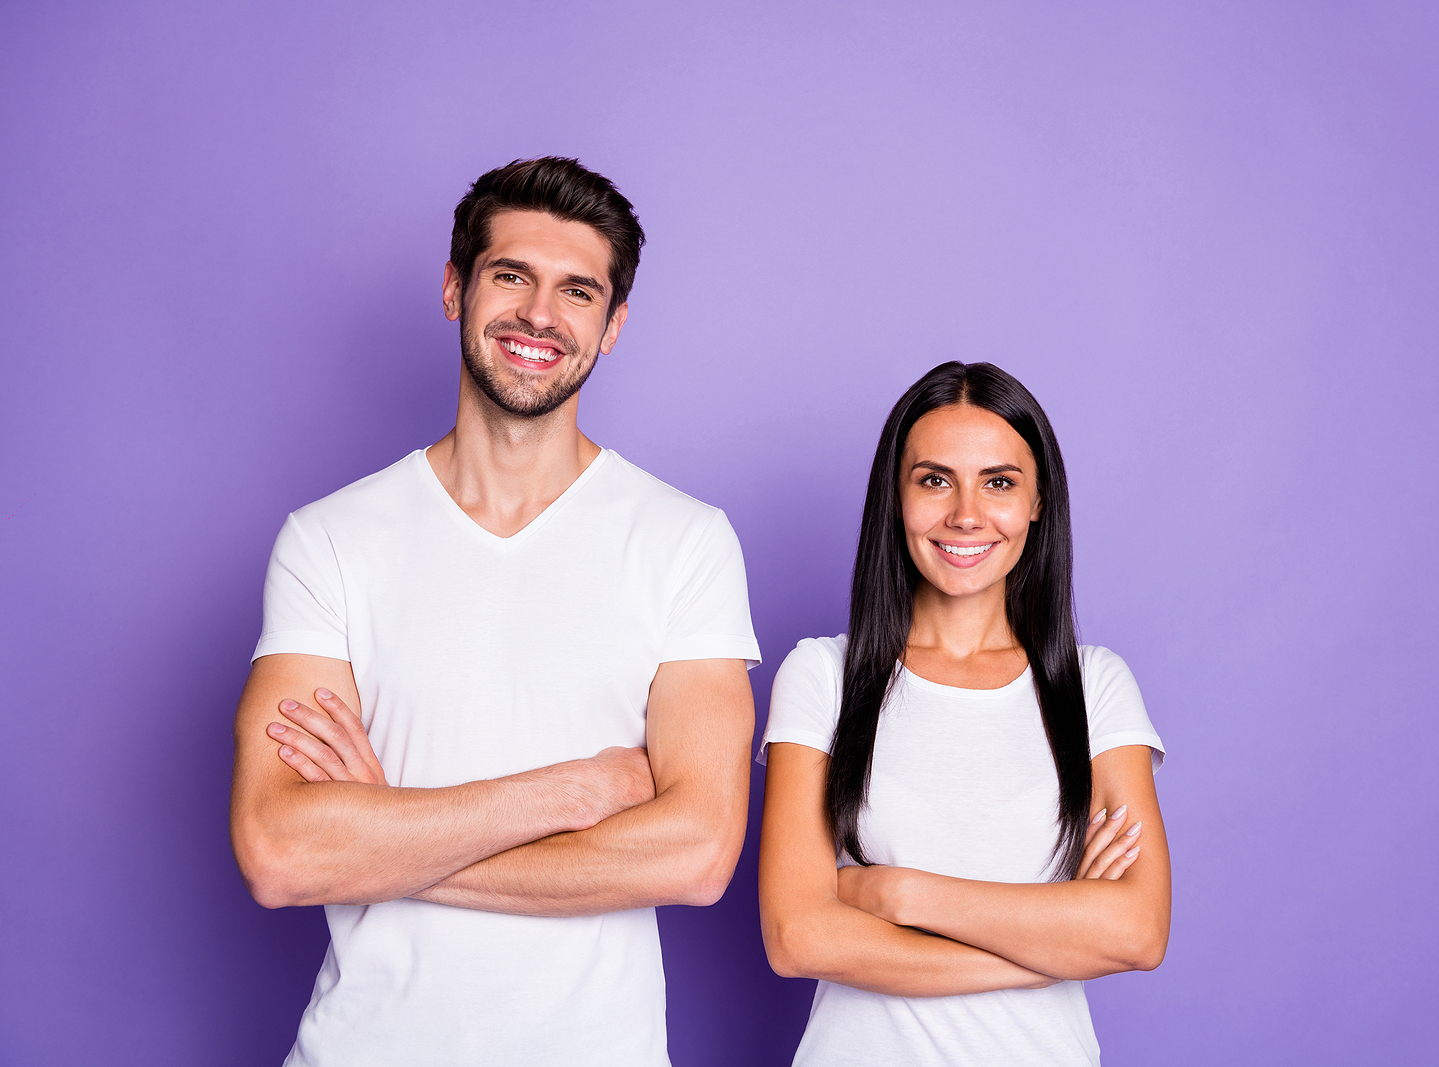 Image of an attractive man and woman of mixed ethnicities standing side by side with their arms crossed and a white tshirt, smiling against a purple background.